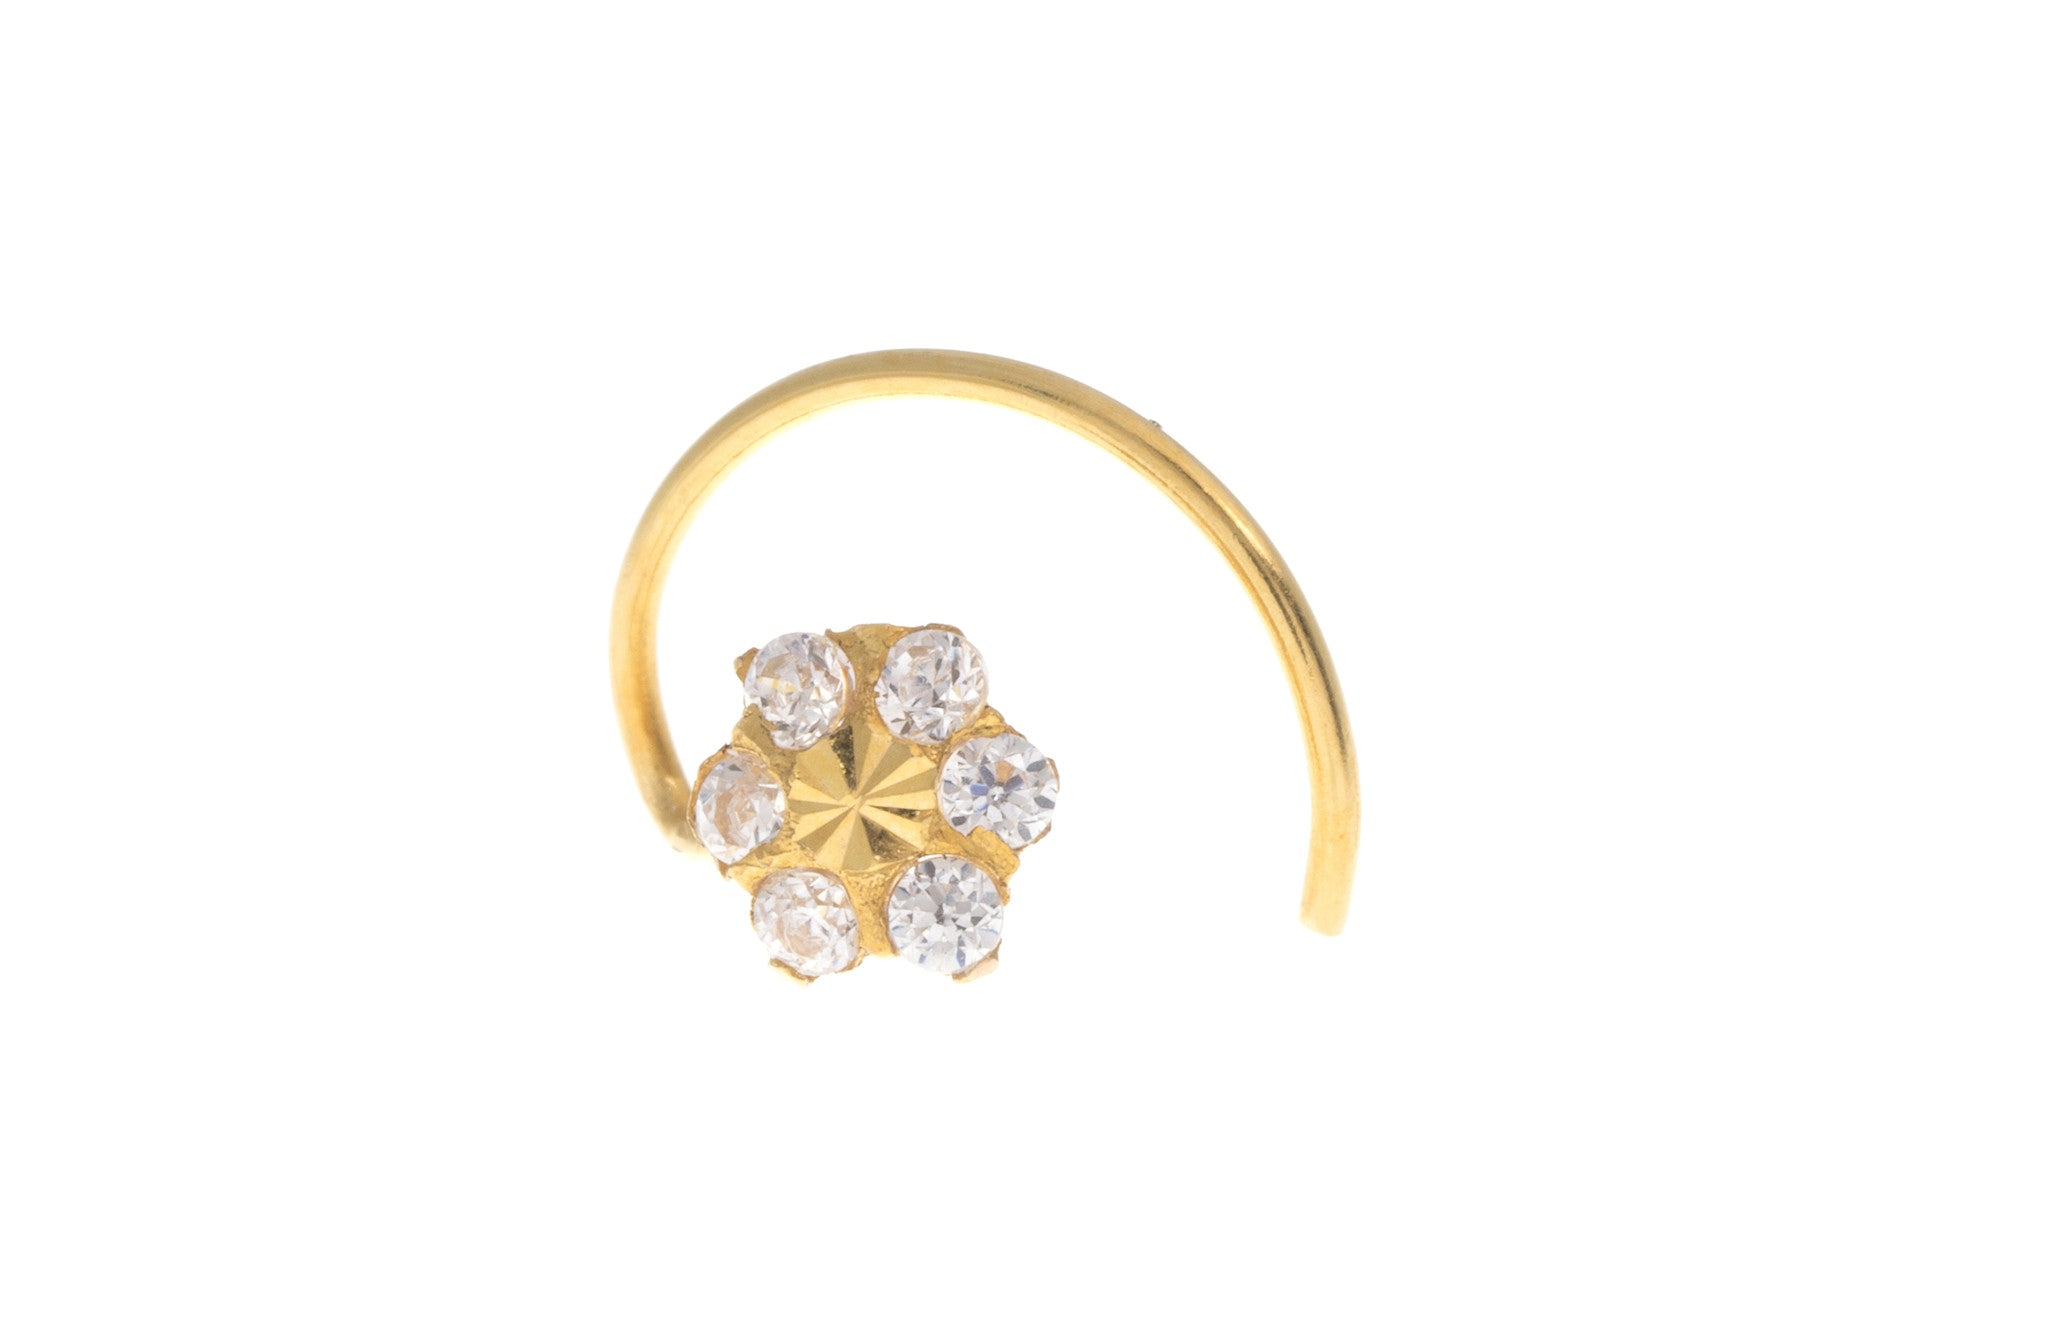 22ct Yellow Gold Nose Stud with Flower Design, Minar Jewellers - 1